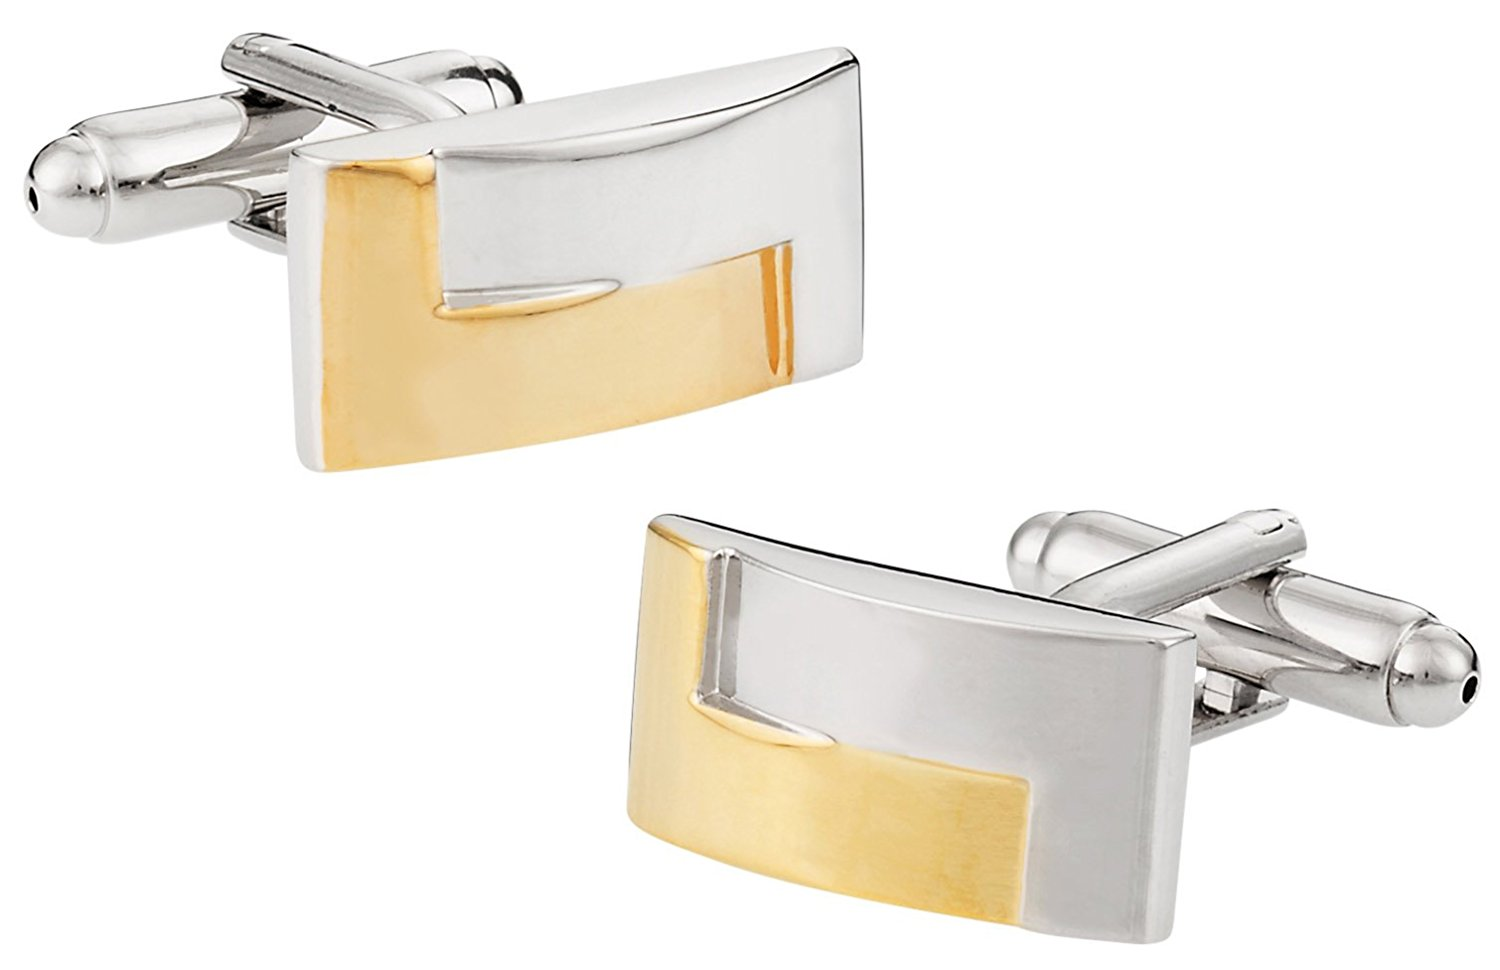 Cuff-Daddy Two-Tone Gold Silver Cufflinks with Presentation Box